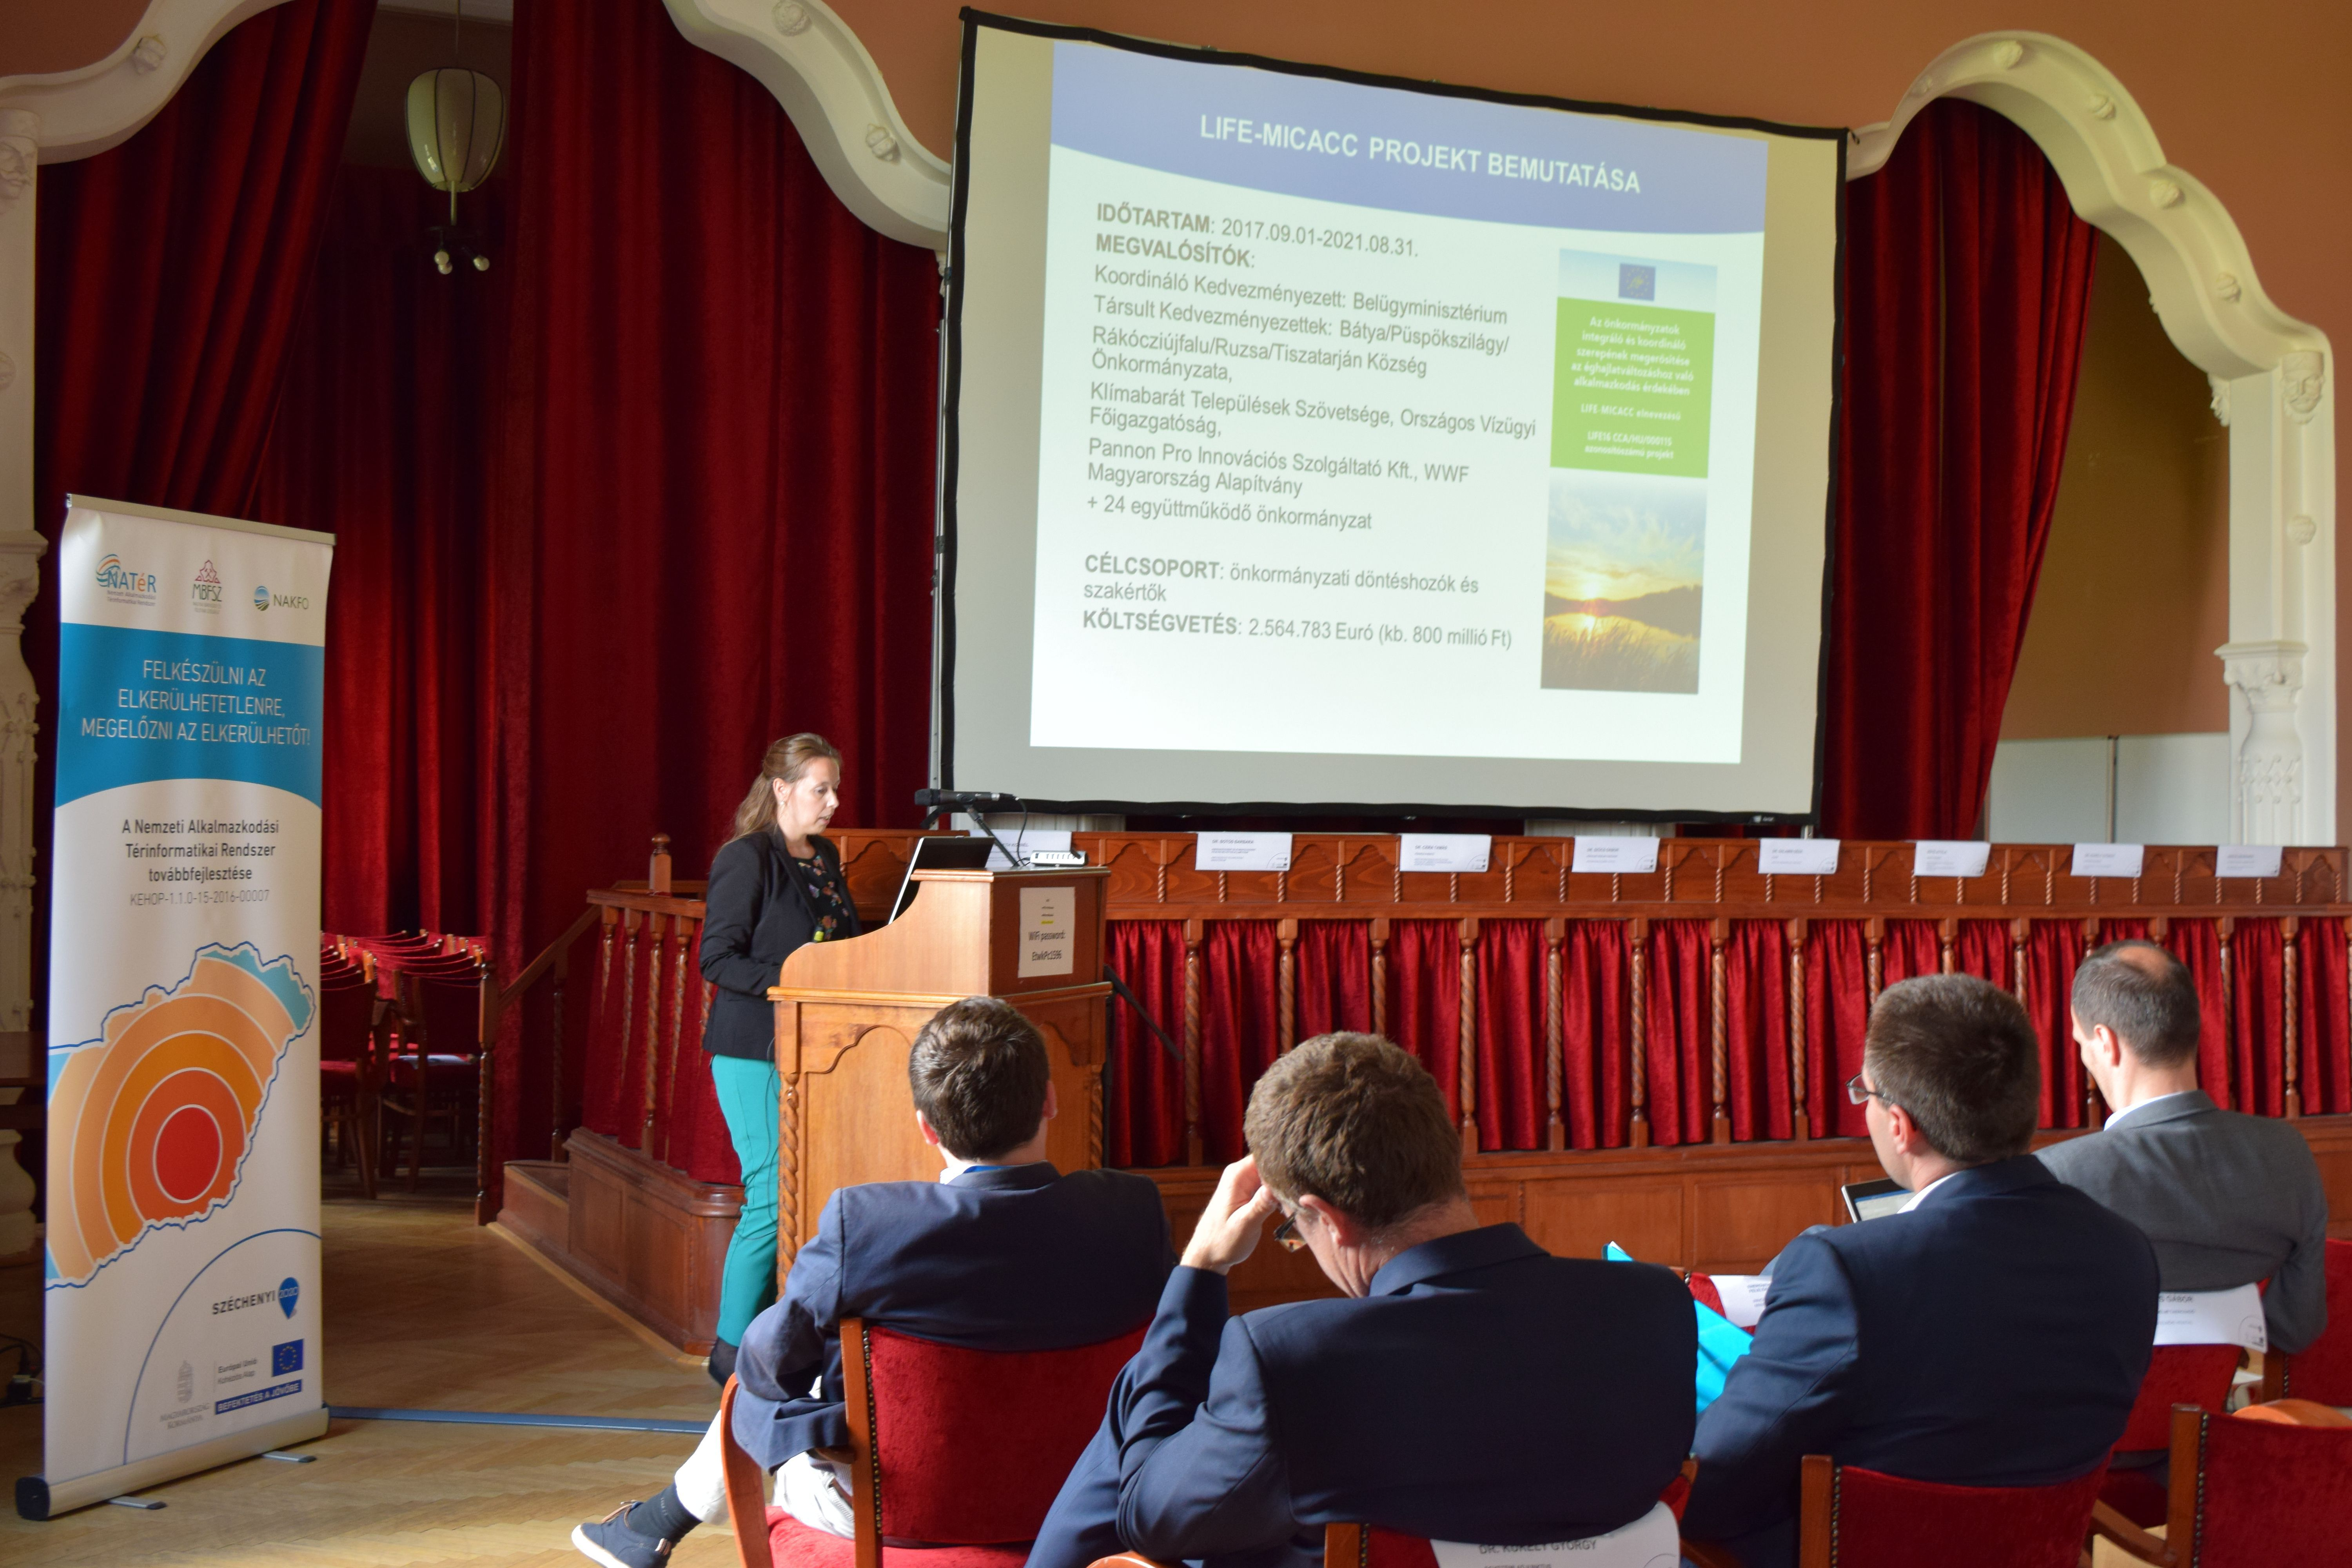 Zsuzsanna Hercig presenting the LIFE-MICACC project to the audience